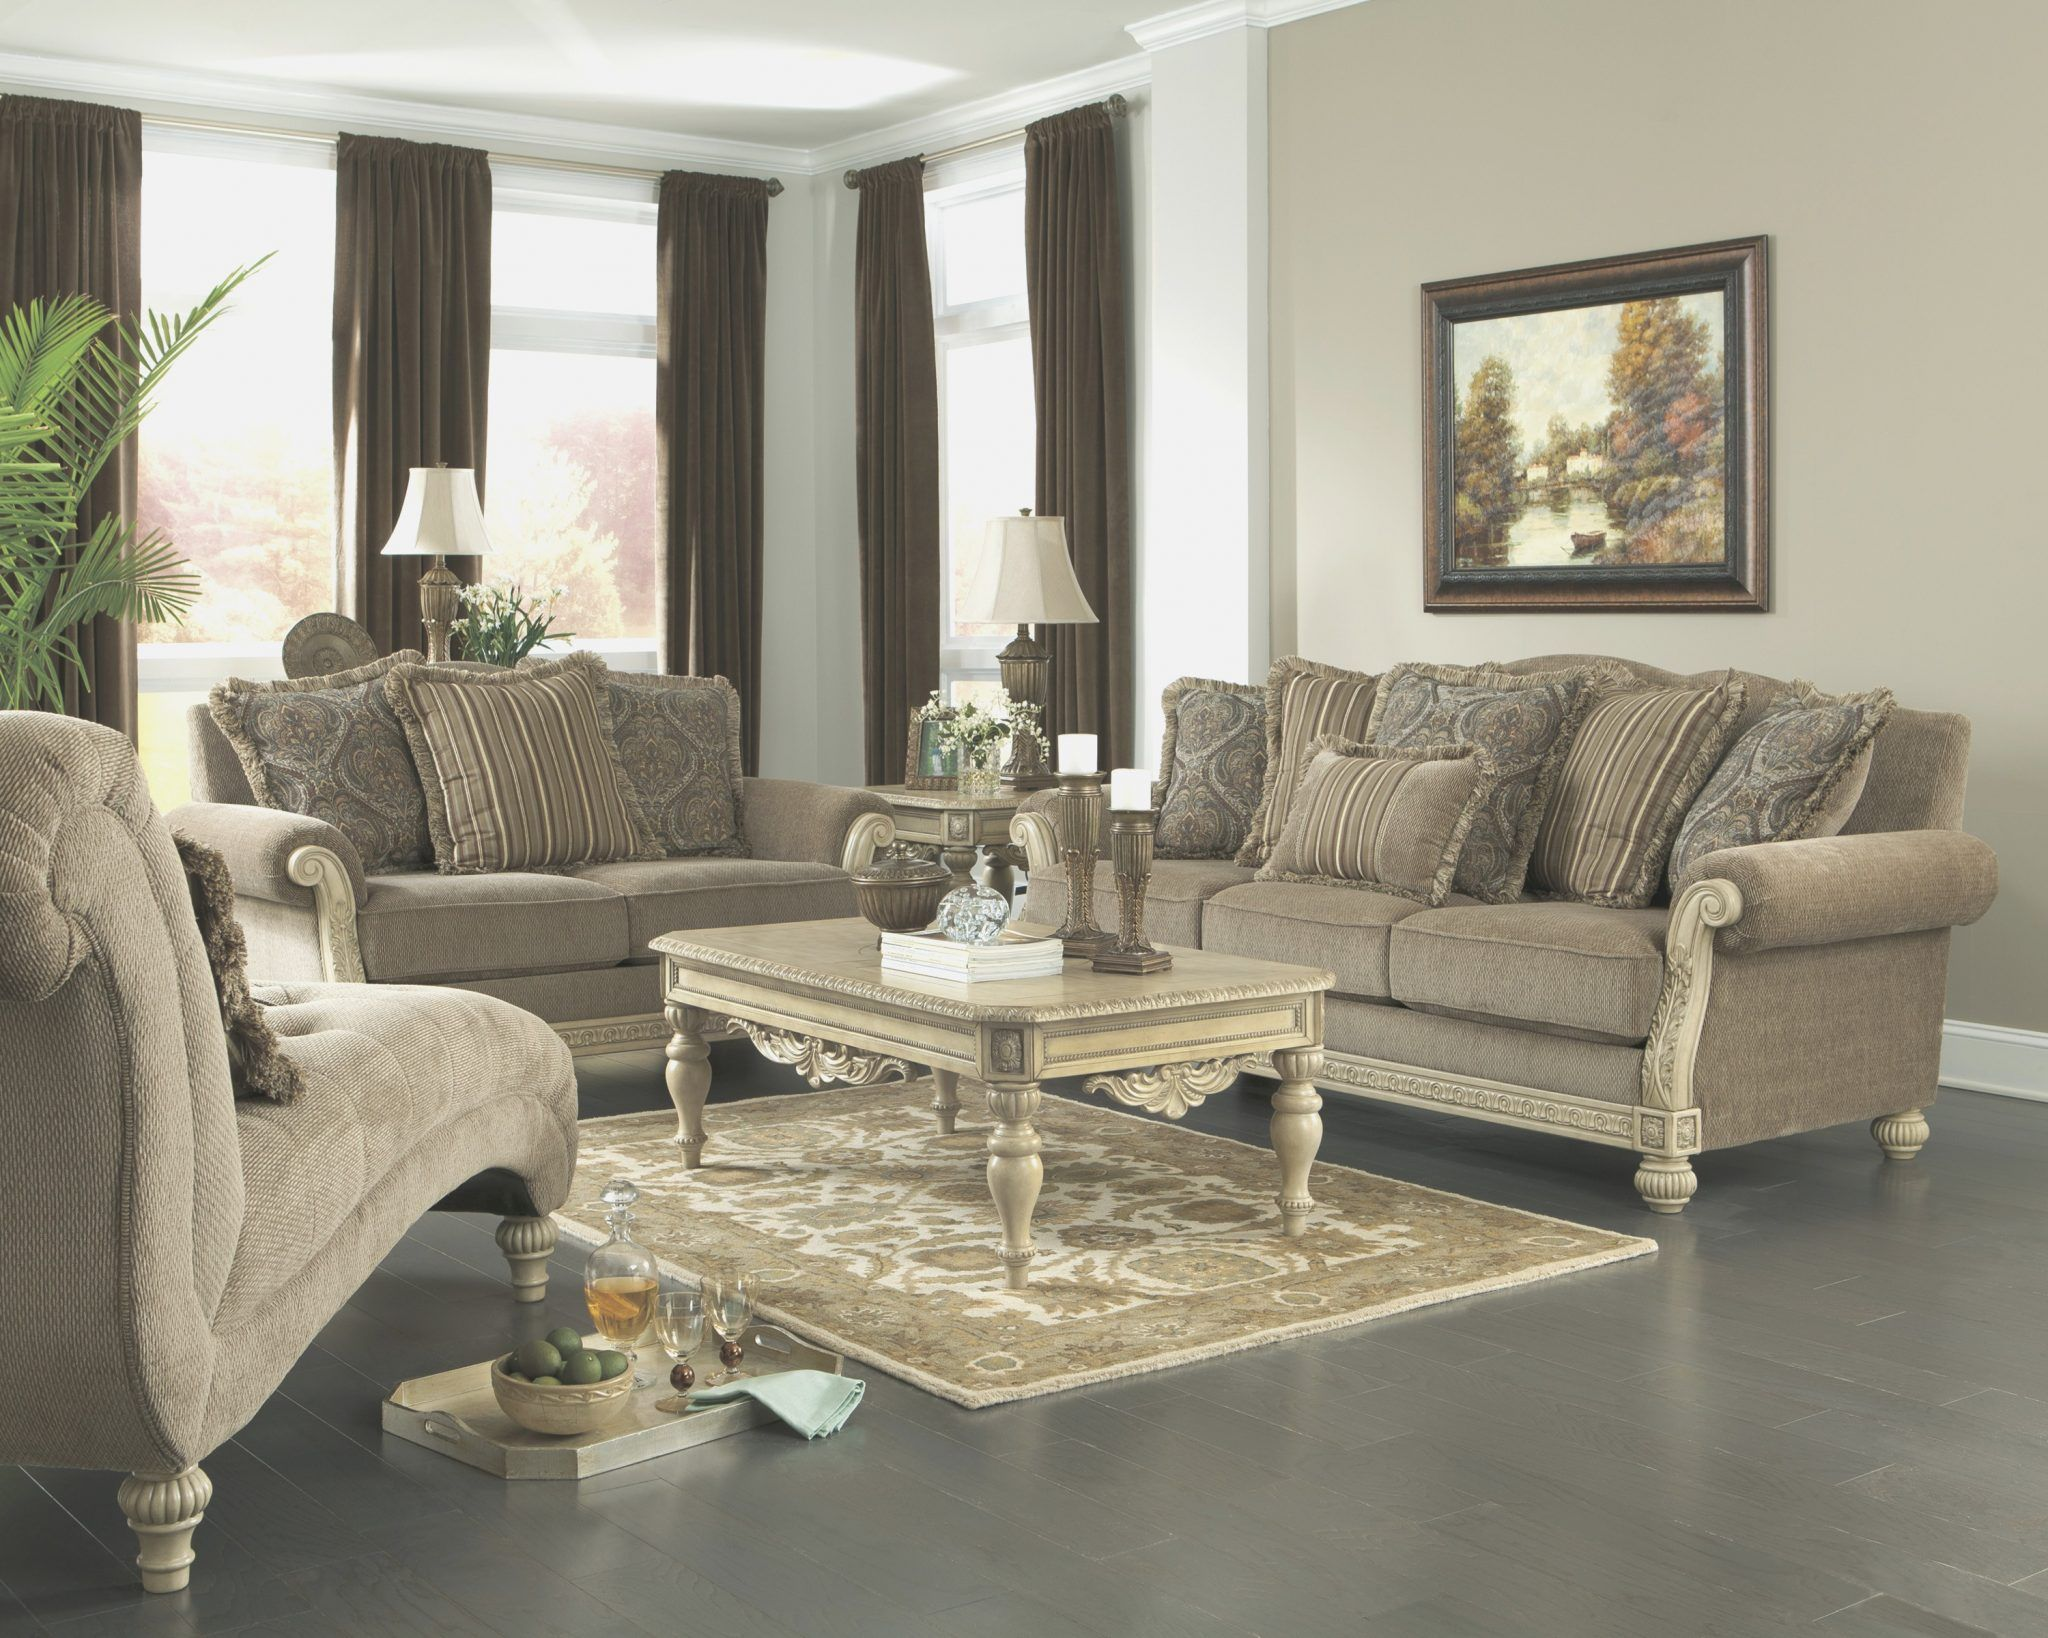 Ashleys Furniture Living Room Sets - ashley furniture bedroom sets